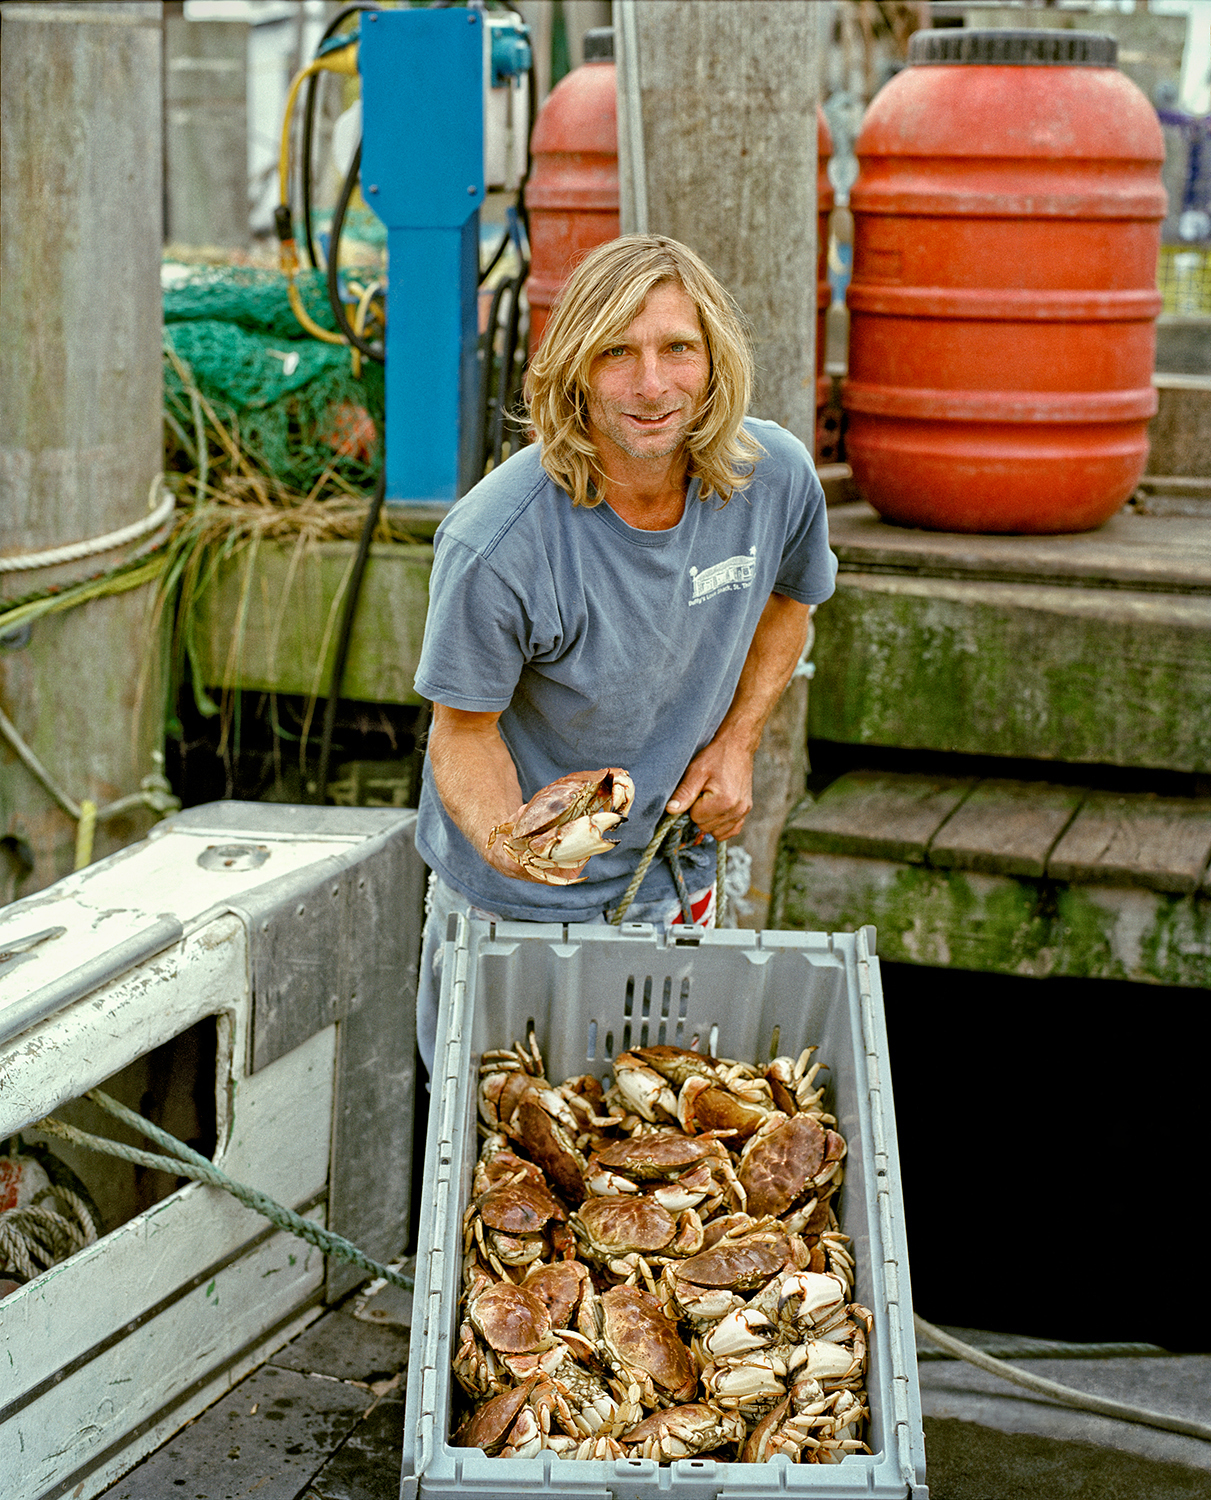 Anthony Sosinski, Commercial Fisherman, Anna Mary Boat, Town Dock